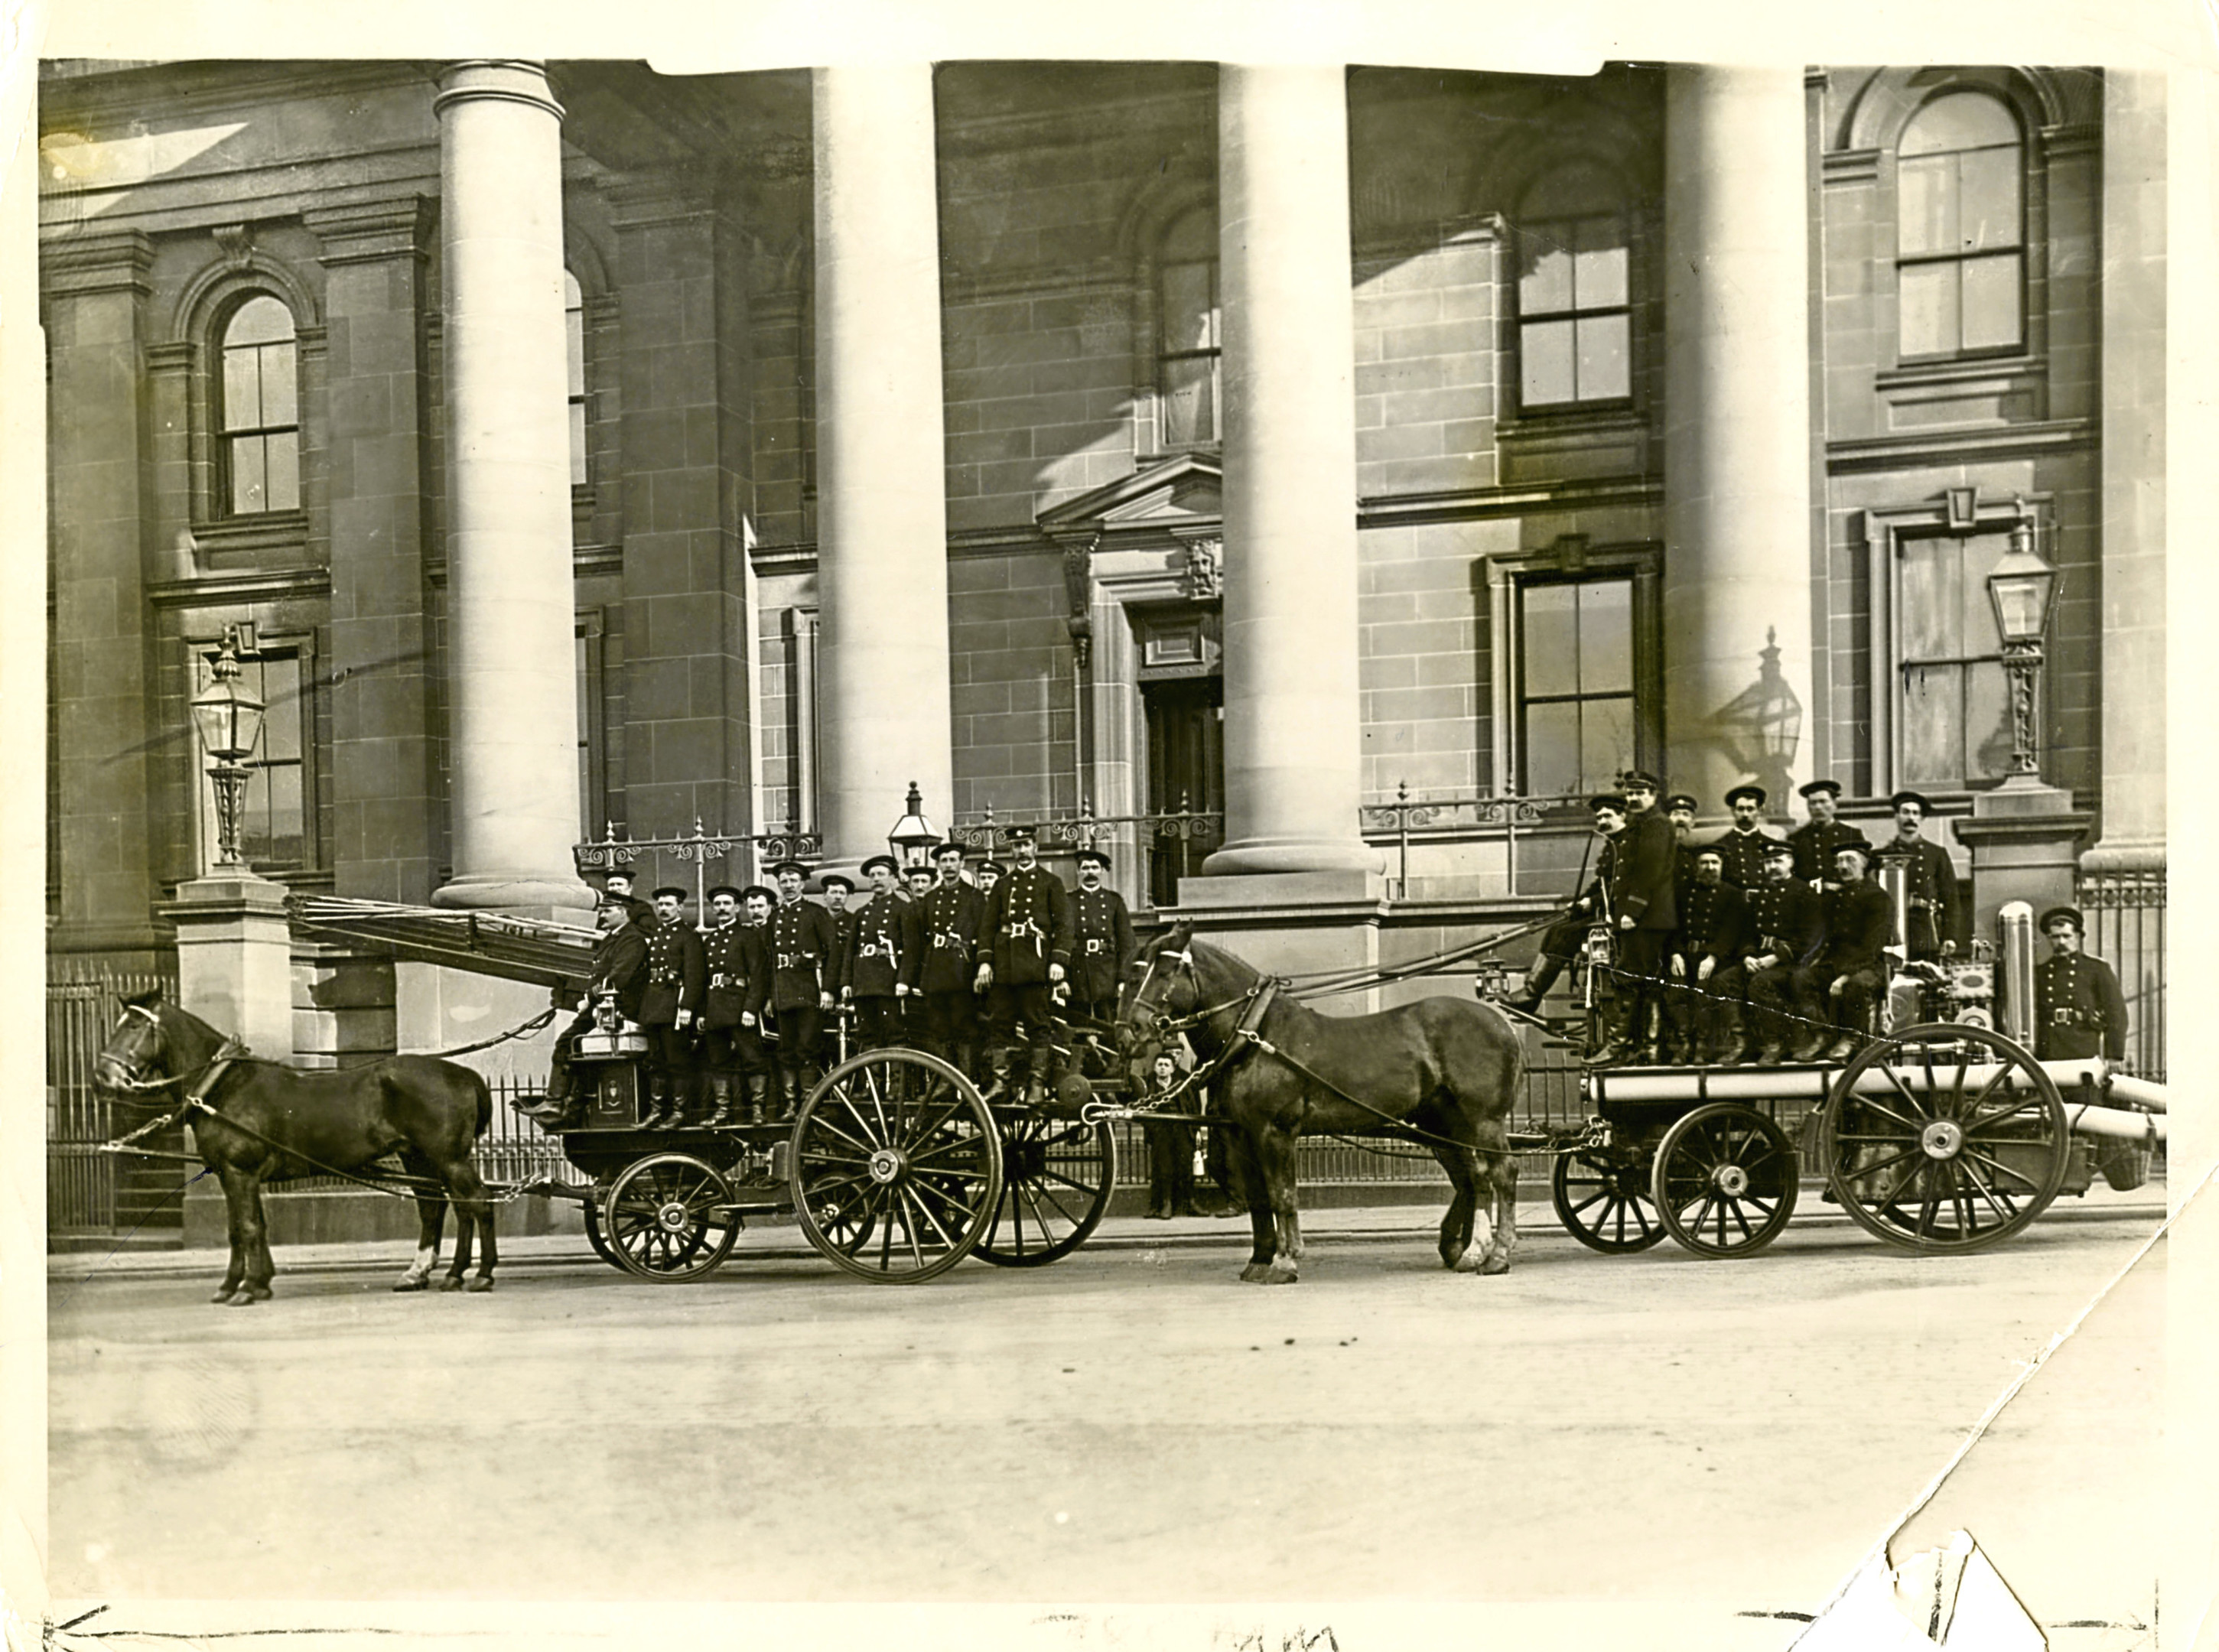 Dundee Fire Brigade turn out in front of Court House Buildings in 1905.